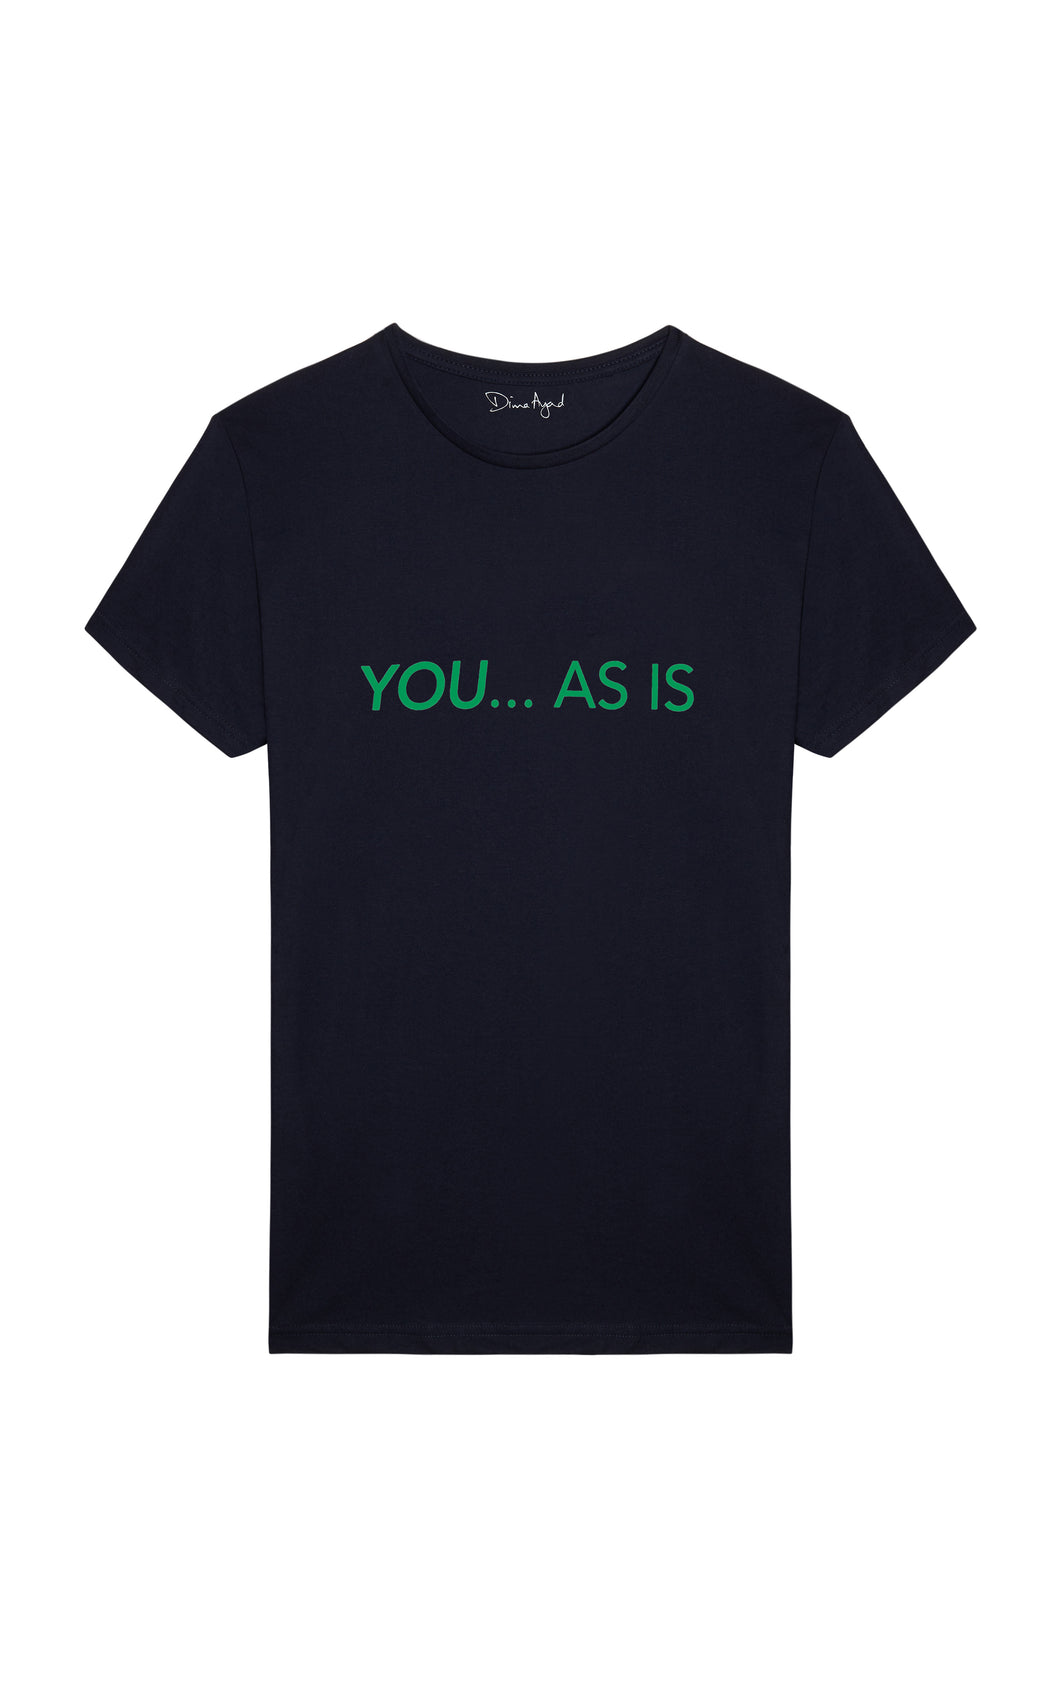 YOU...AS IS Navy Blue T-shirt with Green Text, English